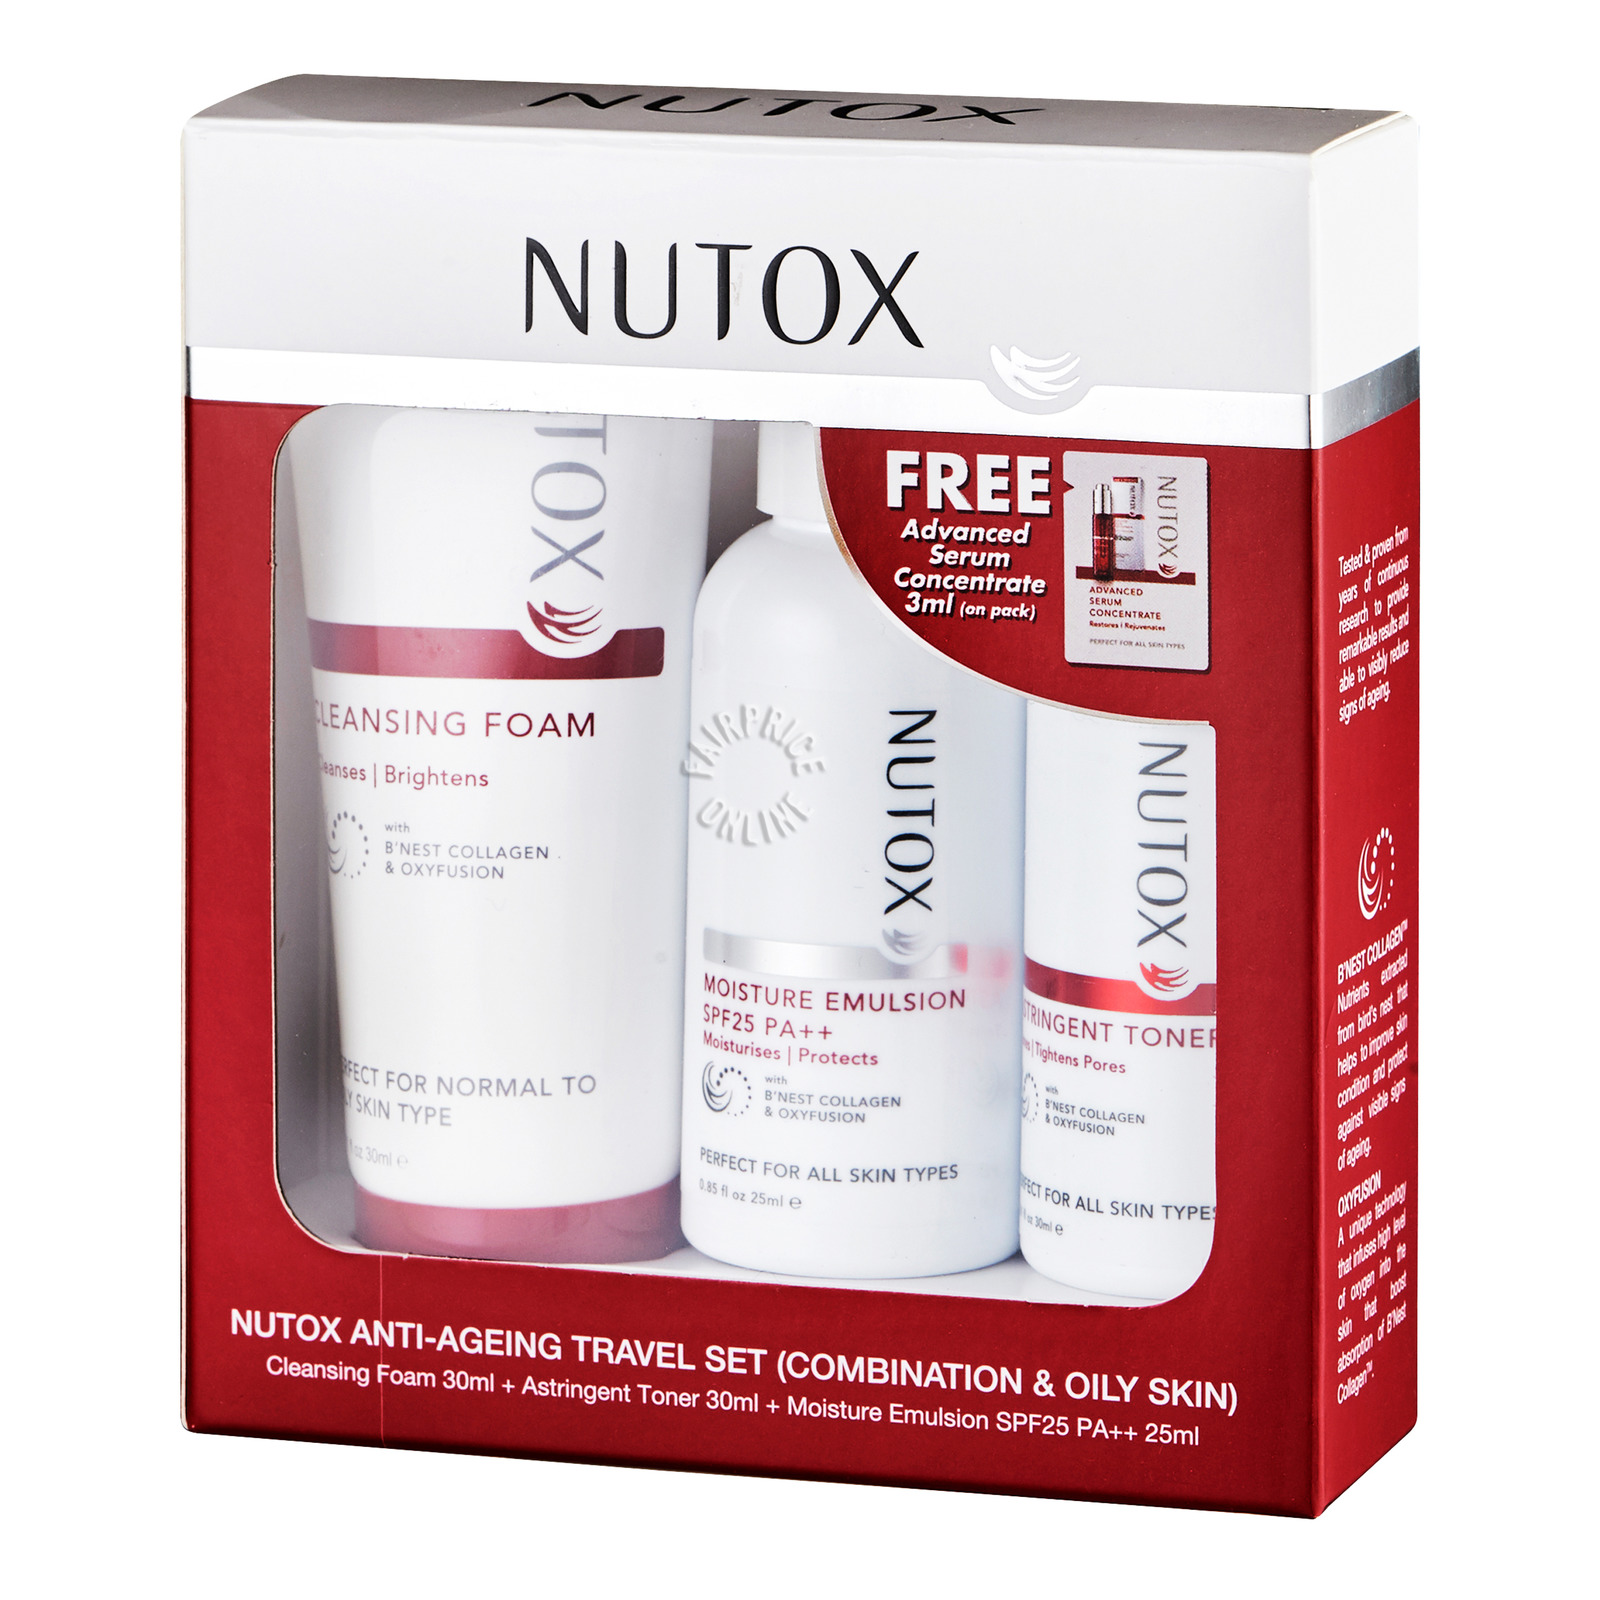 Nutox Anti-Ageing Travel Set - Combination & Oily Skin